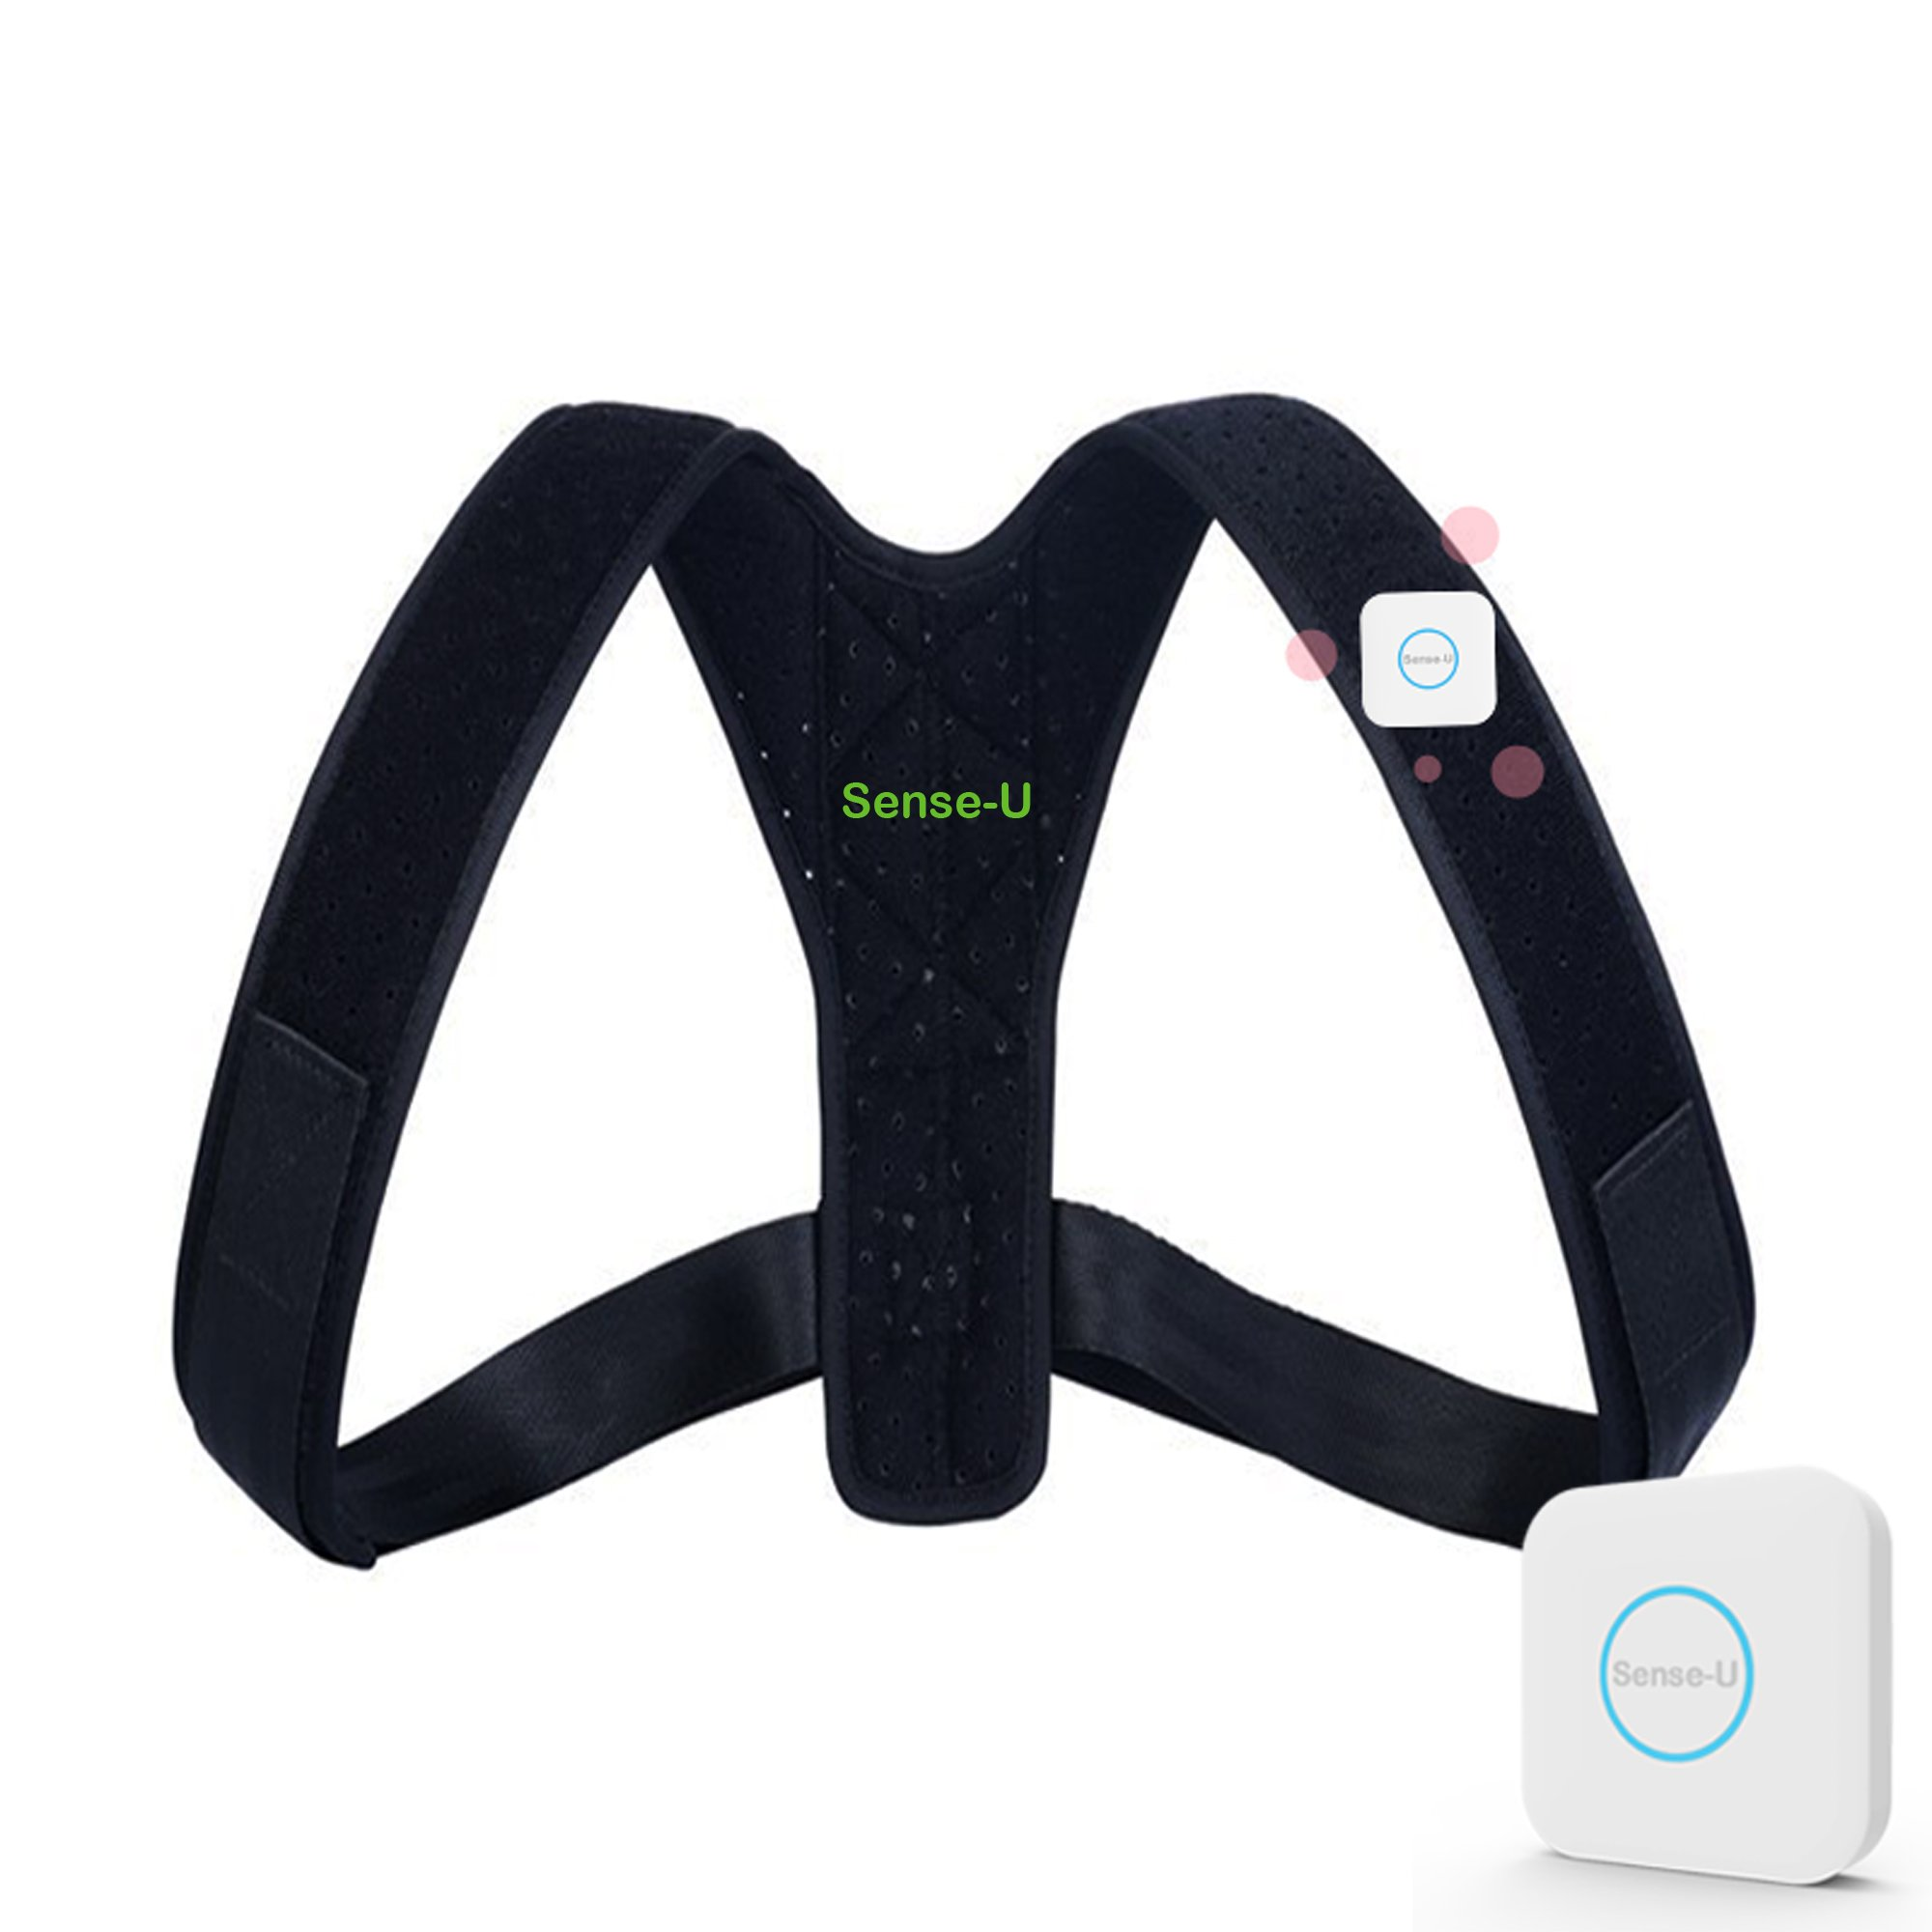 Sense-U SMART Posture Corrector Brace (26''-47'') that Vibrates when You Slouch, for Better Posture. A Posture Trainer to Improve Posture, Reduce Back Pain for Men, Women, Adults, Kids